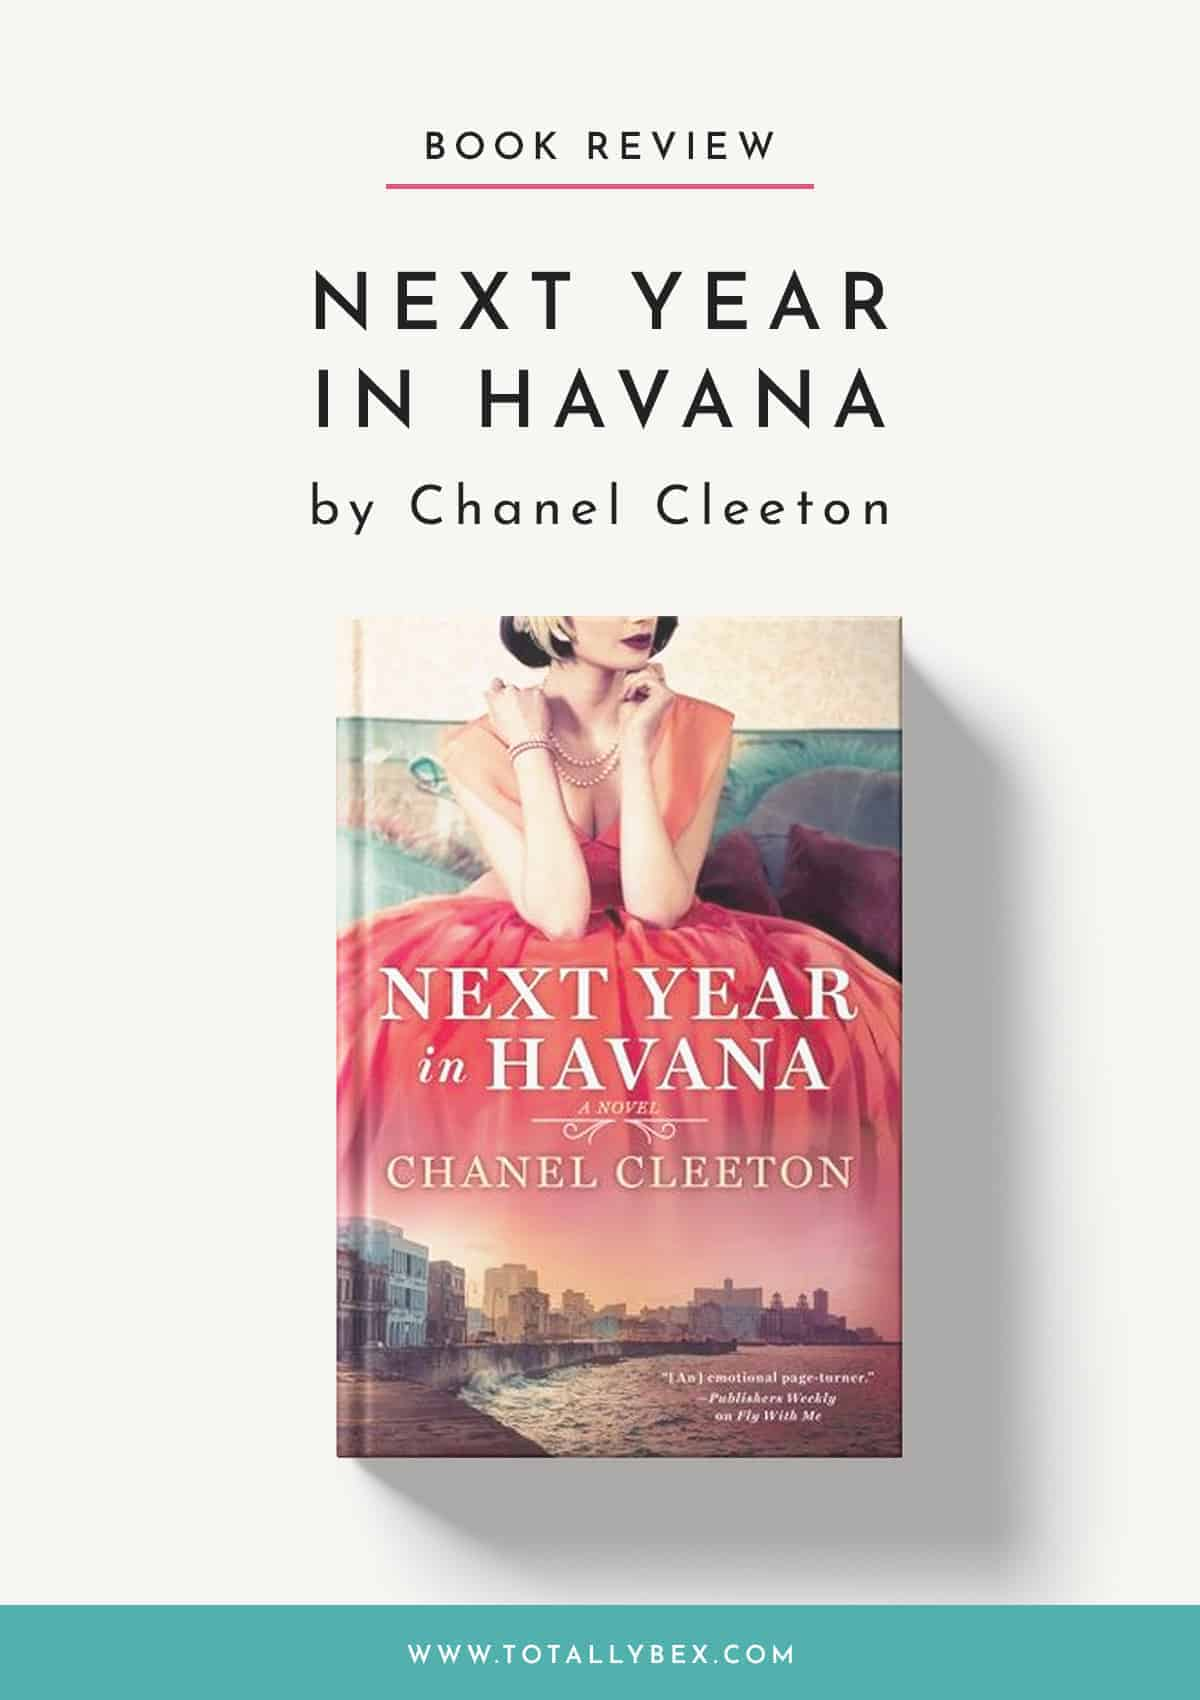 Next Year in Havana by Chanel Cleeton-Book Review